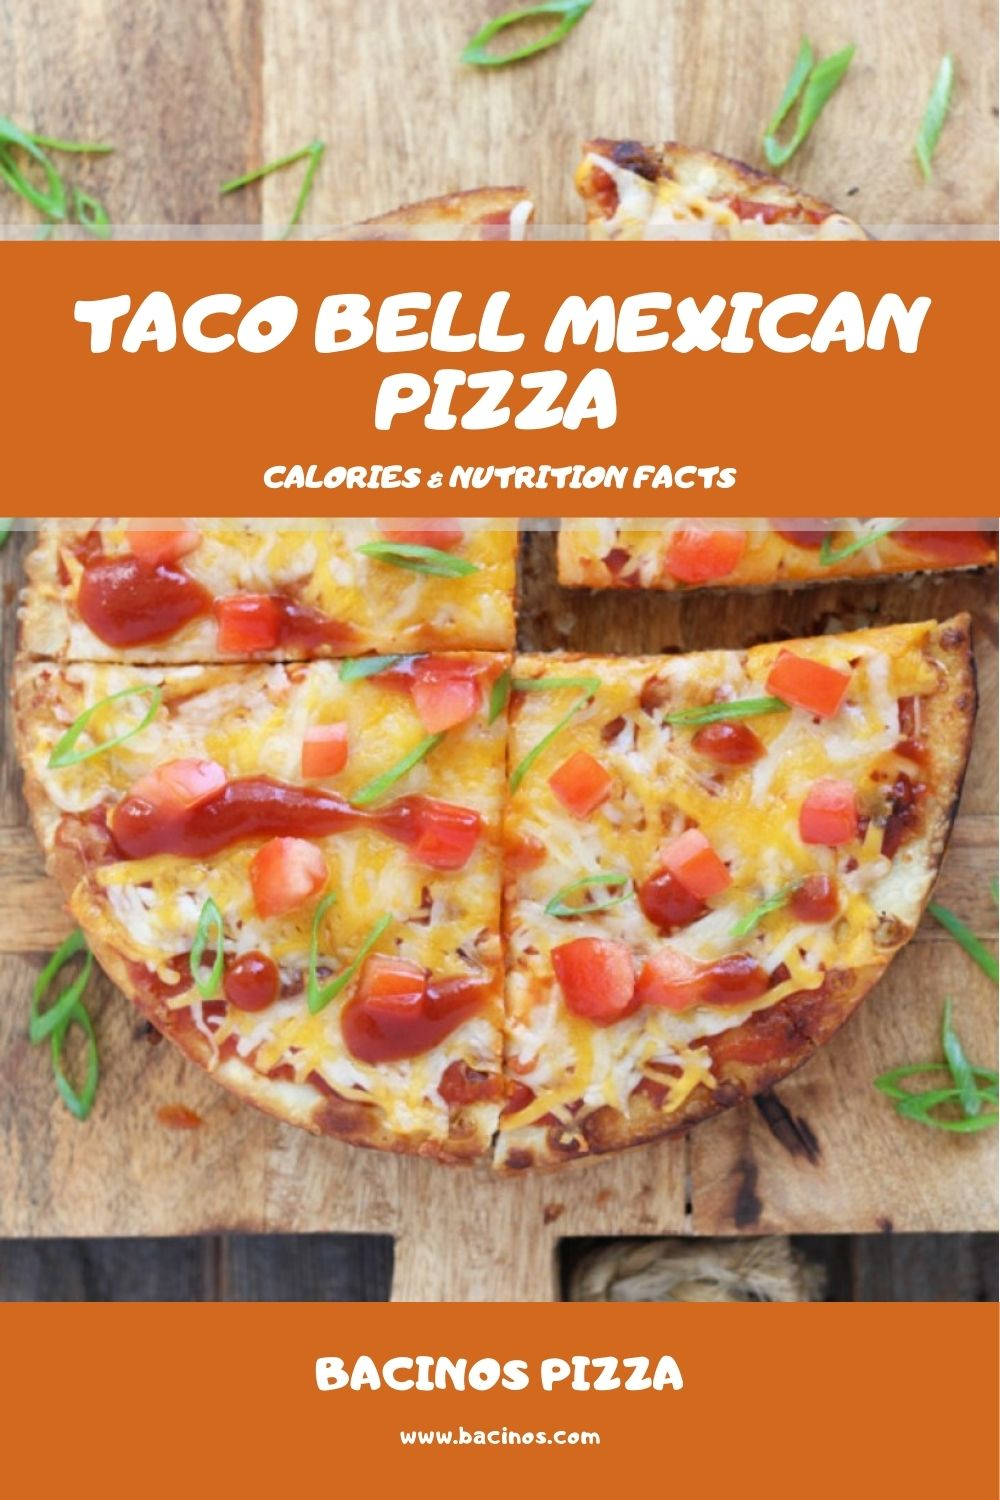 Taco Bell Mexican Pizza Calories & Nutrition Facts (Chart) 2